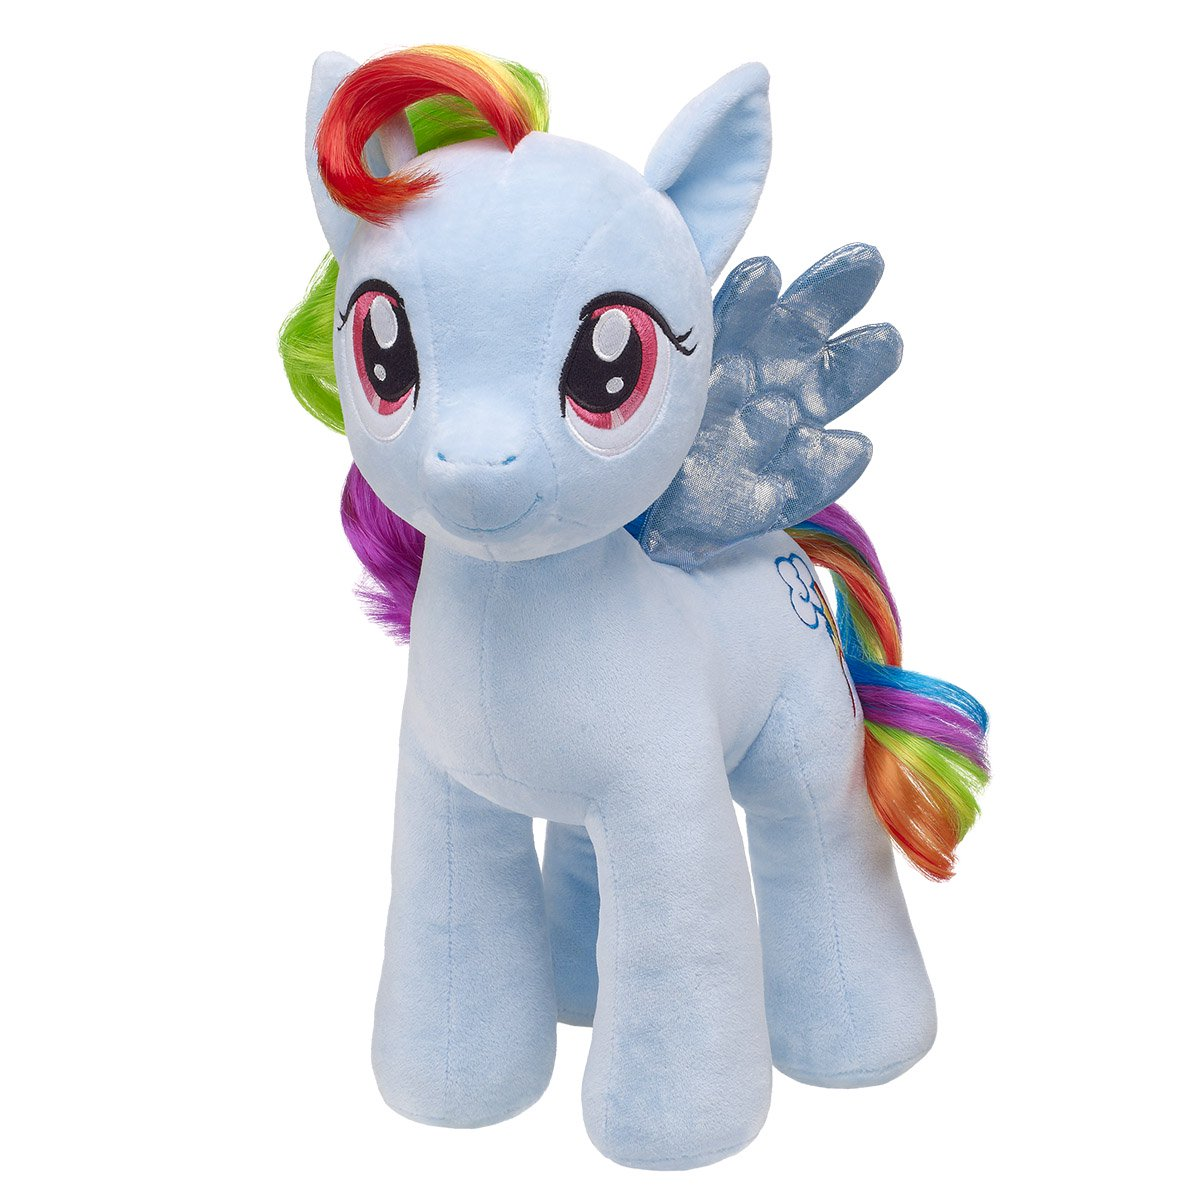 a3e14e990a2 MY LITTLE PONY RAINBOW DASH. MY LITTLE PONY RAINBOW DASH My Little Pony  Plush ...